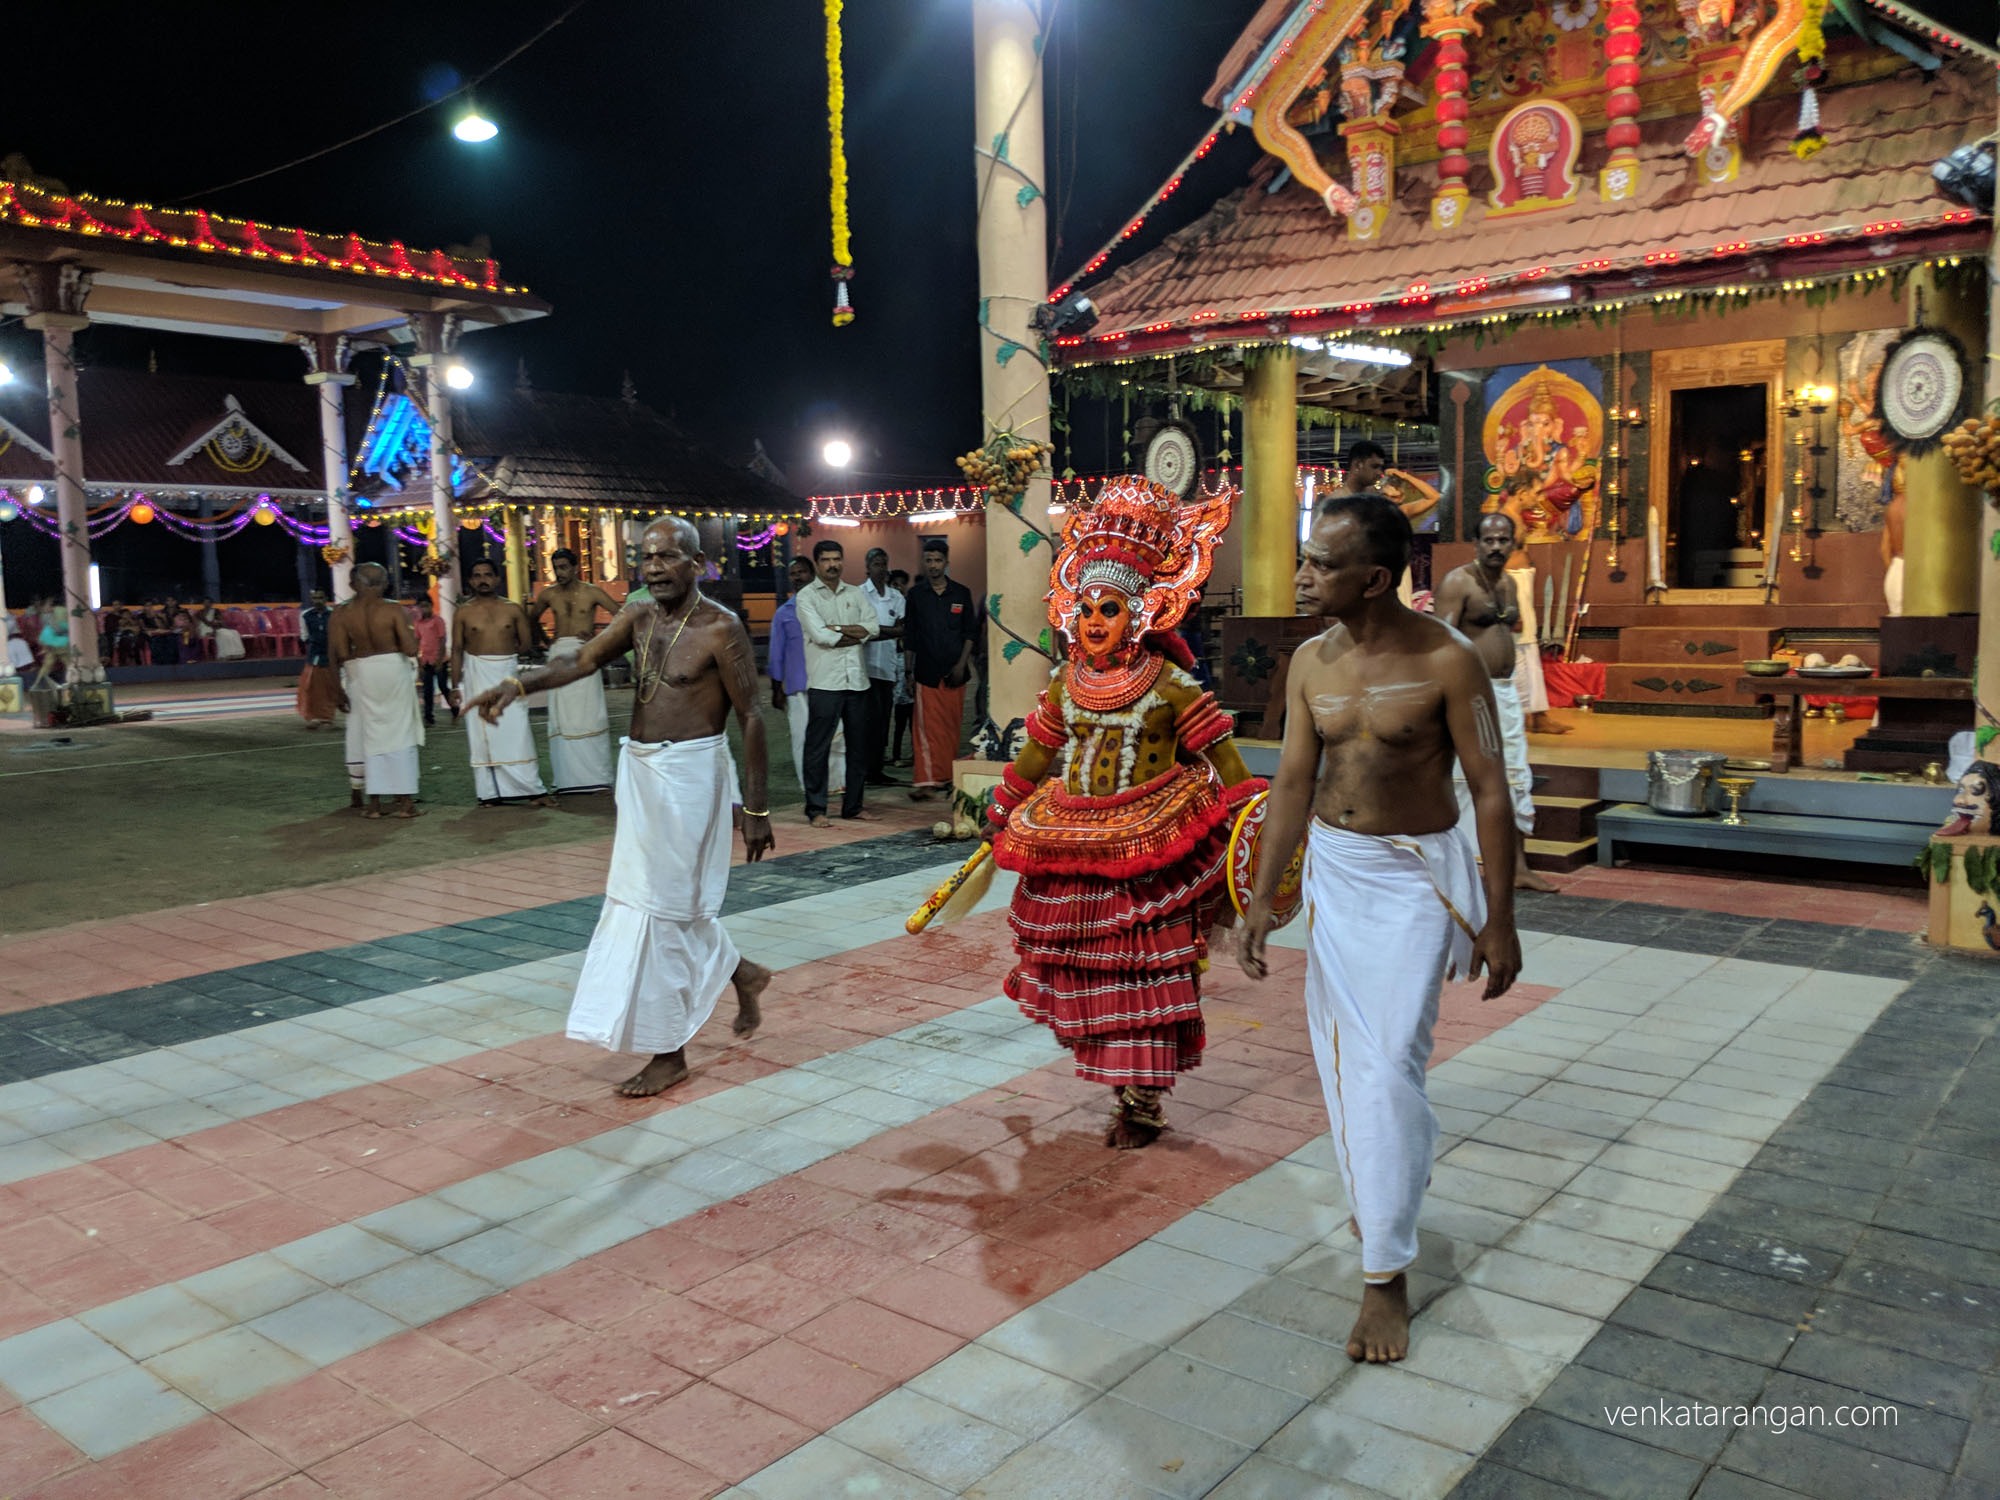 The Theyyam artist coming back after offering his prayers to the Goddess